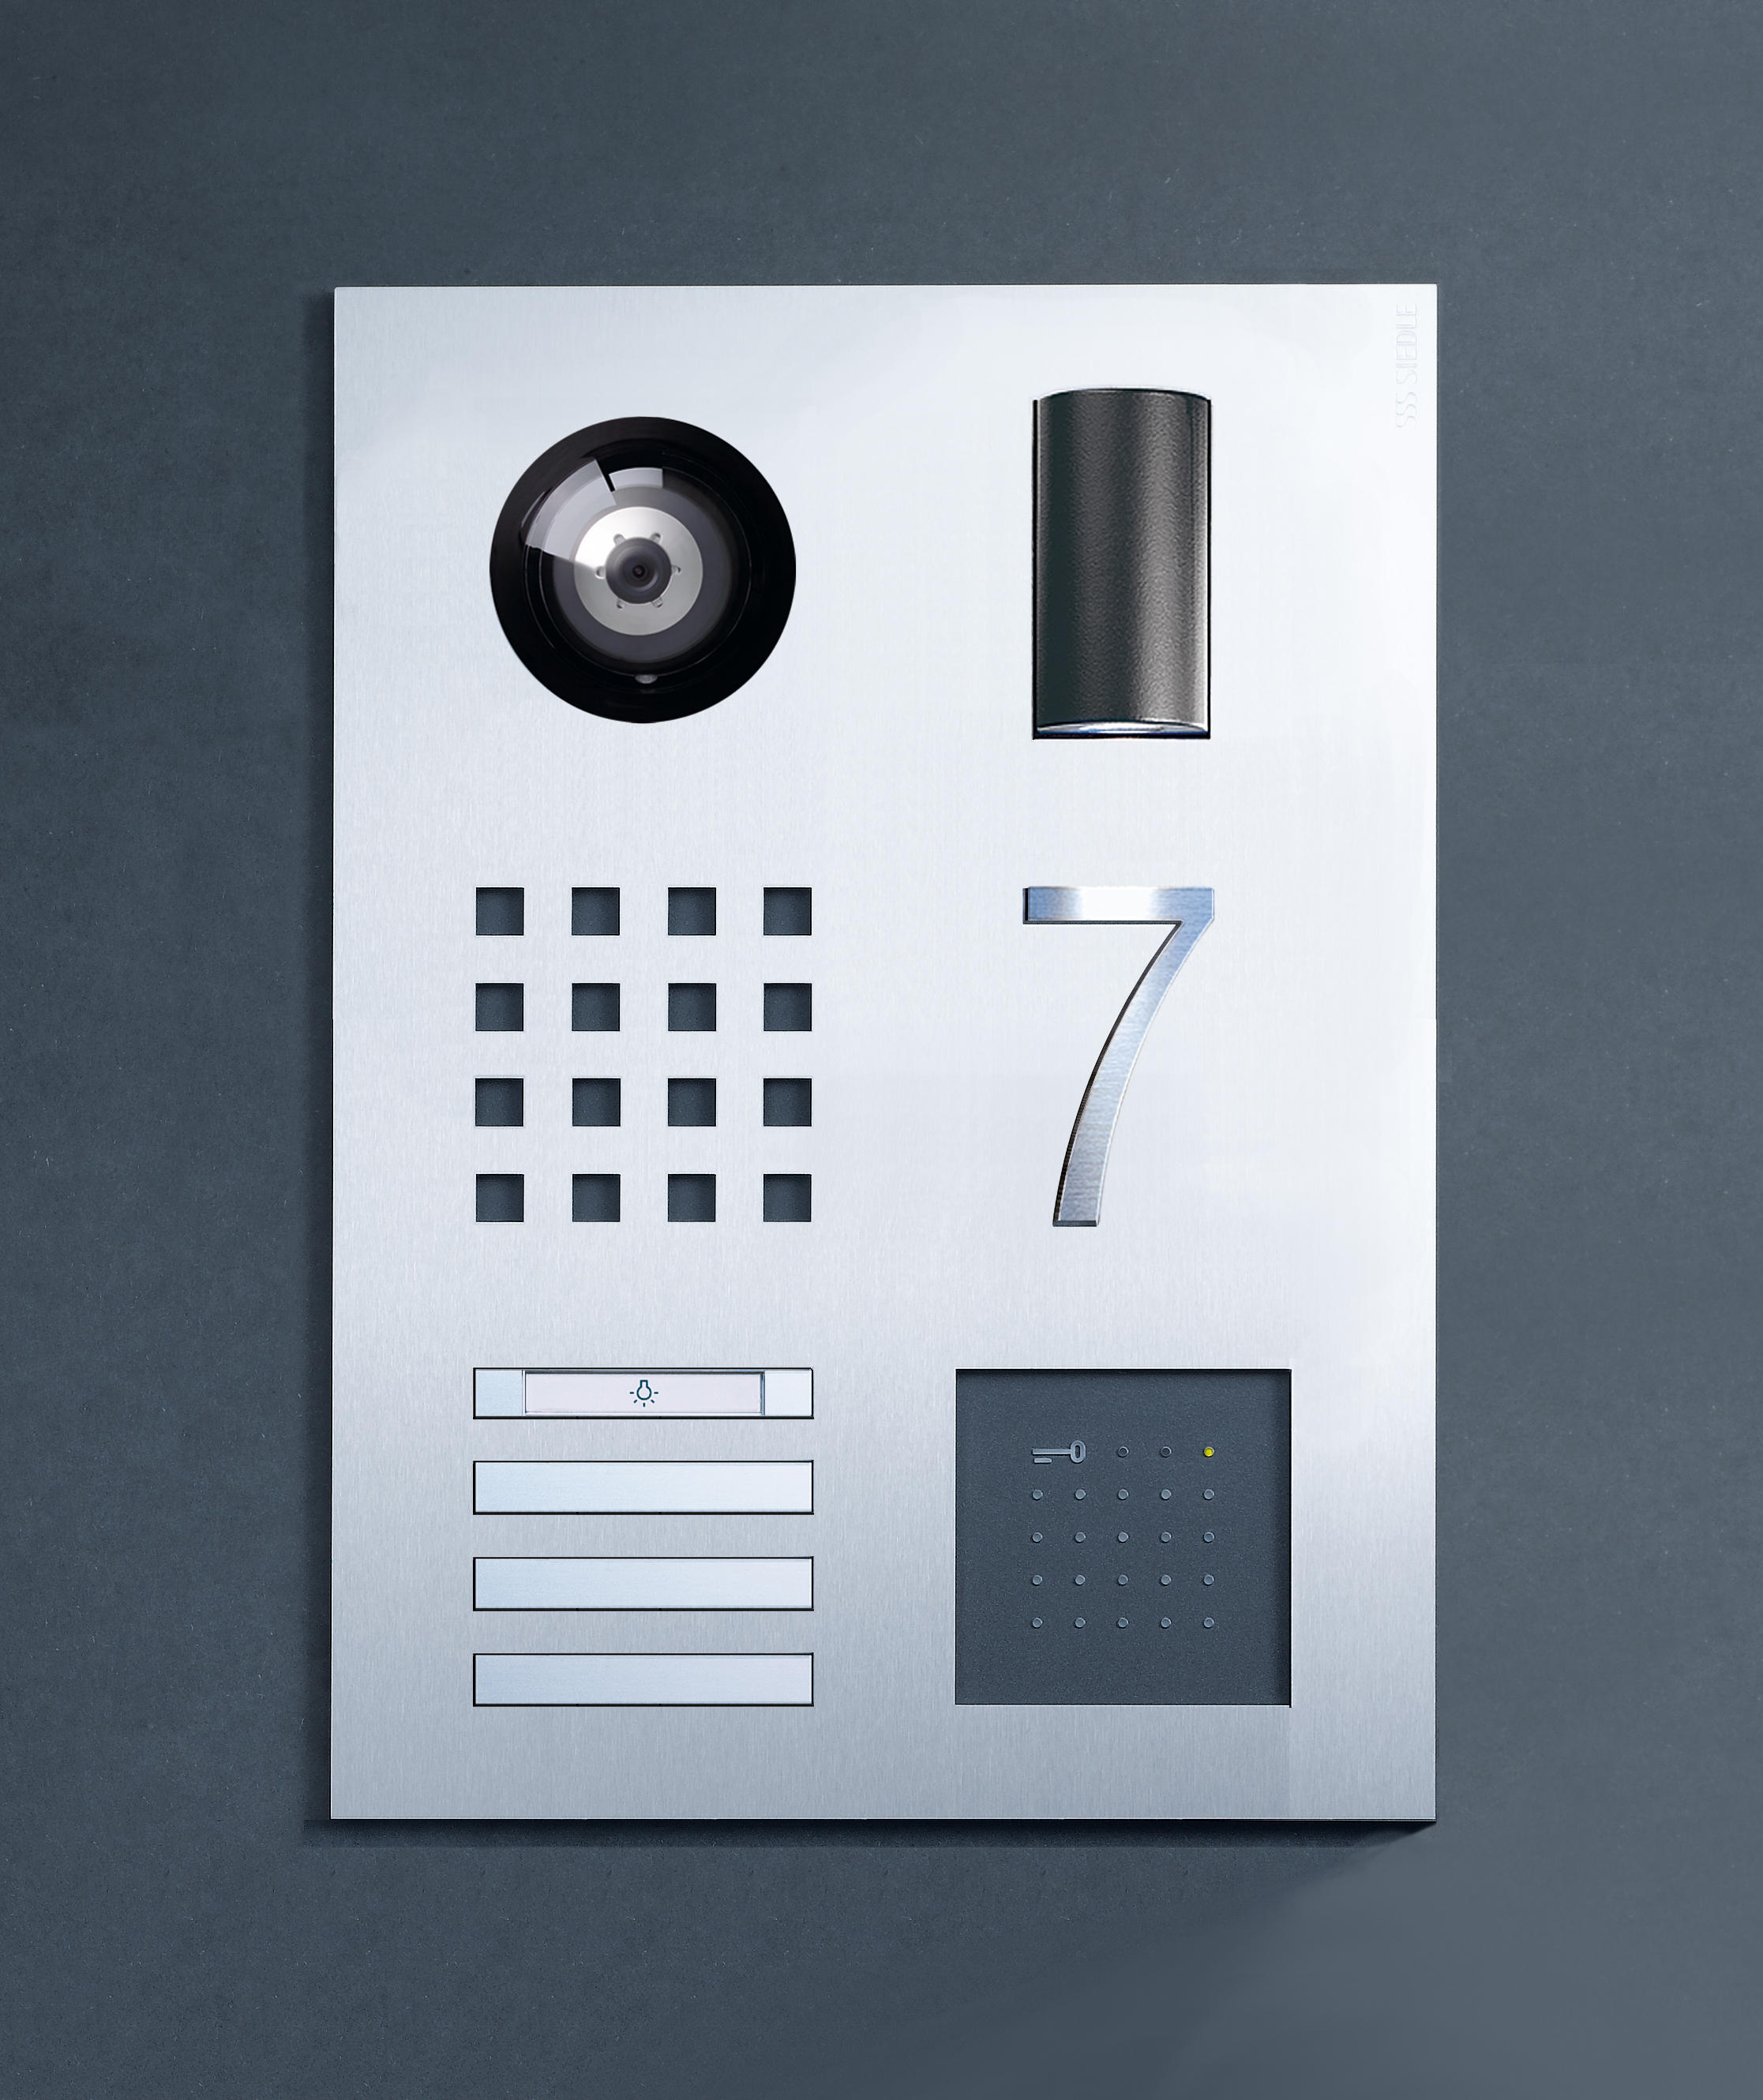 siedle steel door loudspeaker by siedle architonic. Black Bedroom Furniture Sets. Home Design Ideas